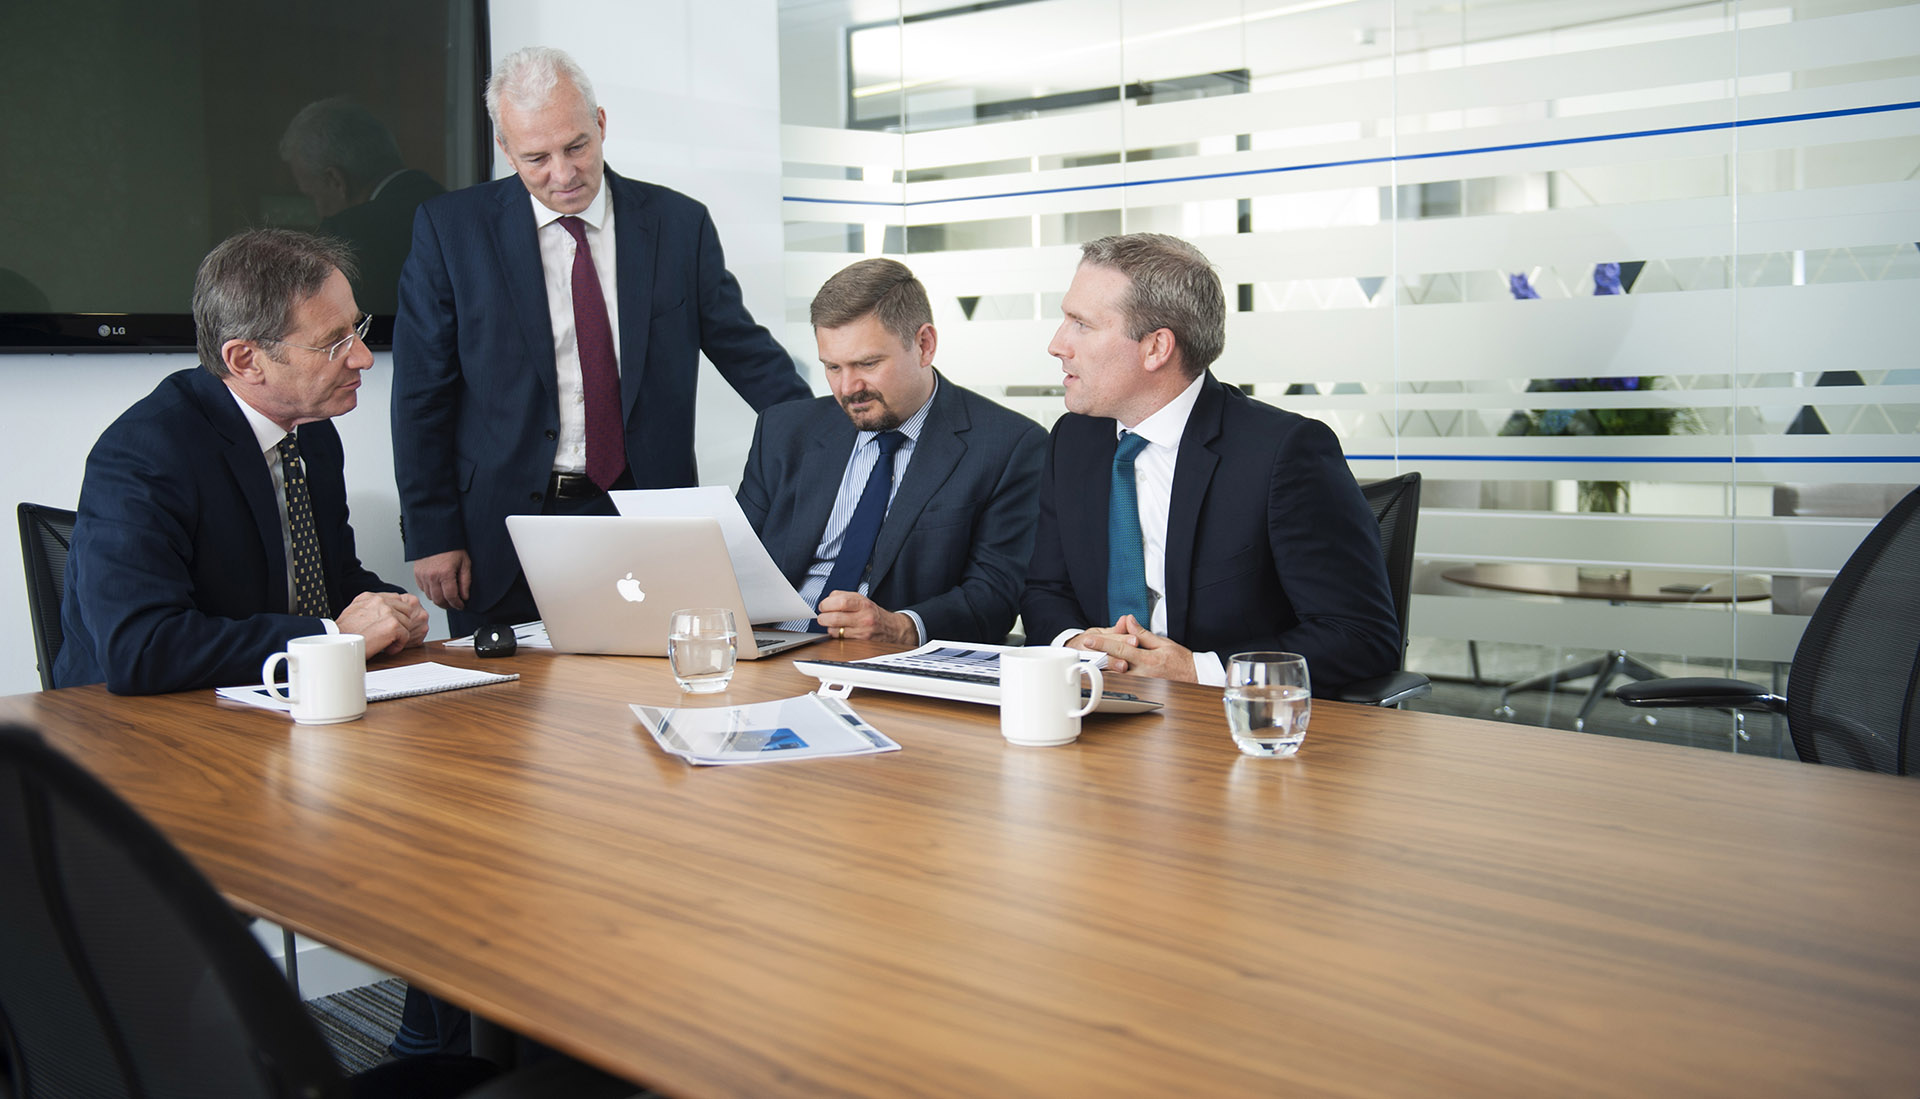 A group of businessmen conduct a meeting in a boardroom in Manchester. Corporate Photography by Manchesterphotographer.com